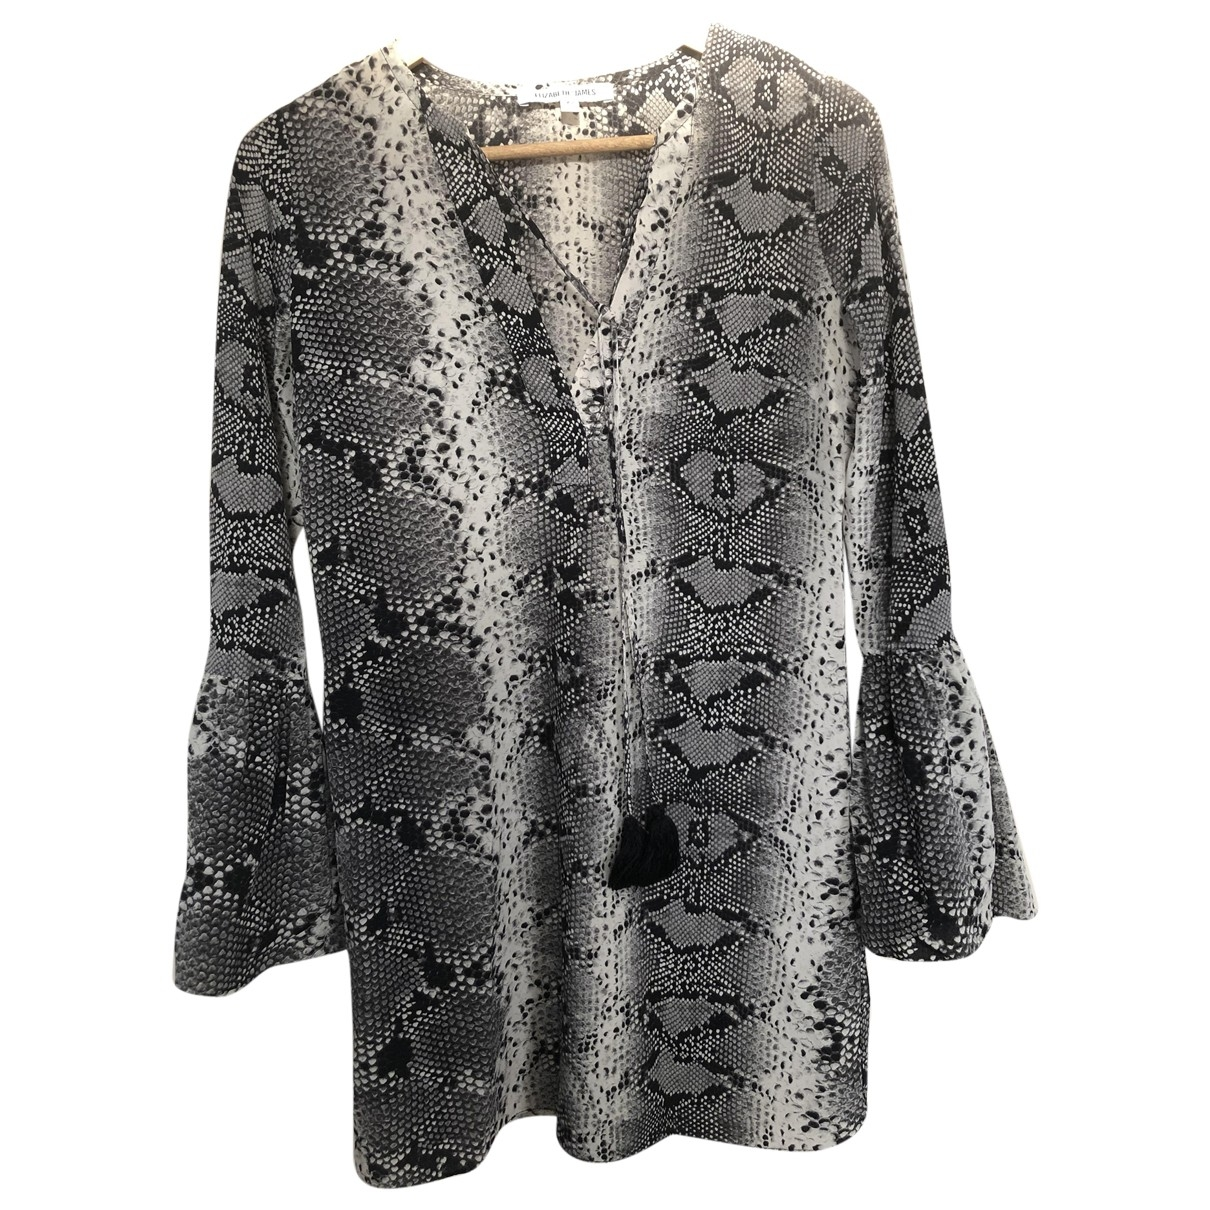 Elizabeth And James - Robe   pour femme en soie - gris